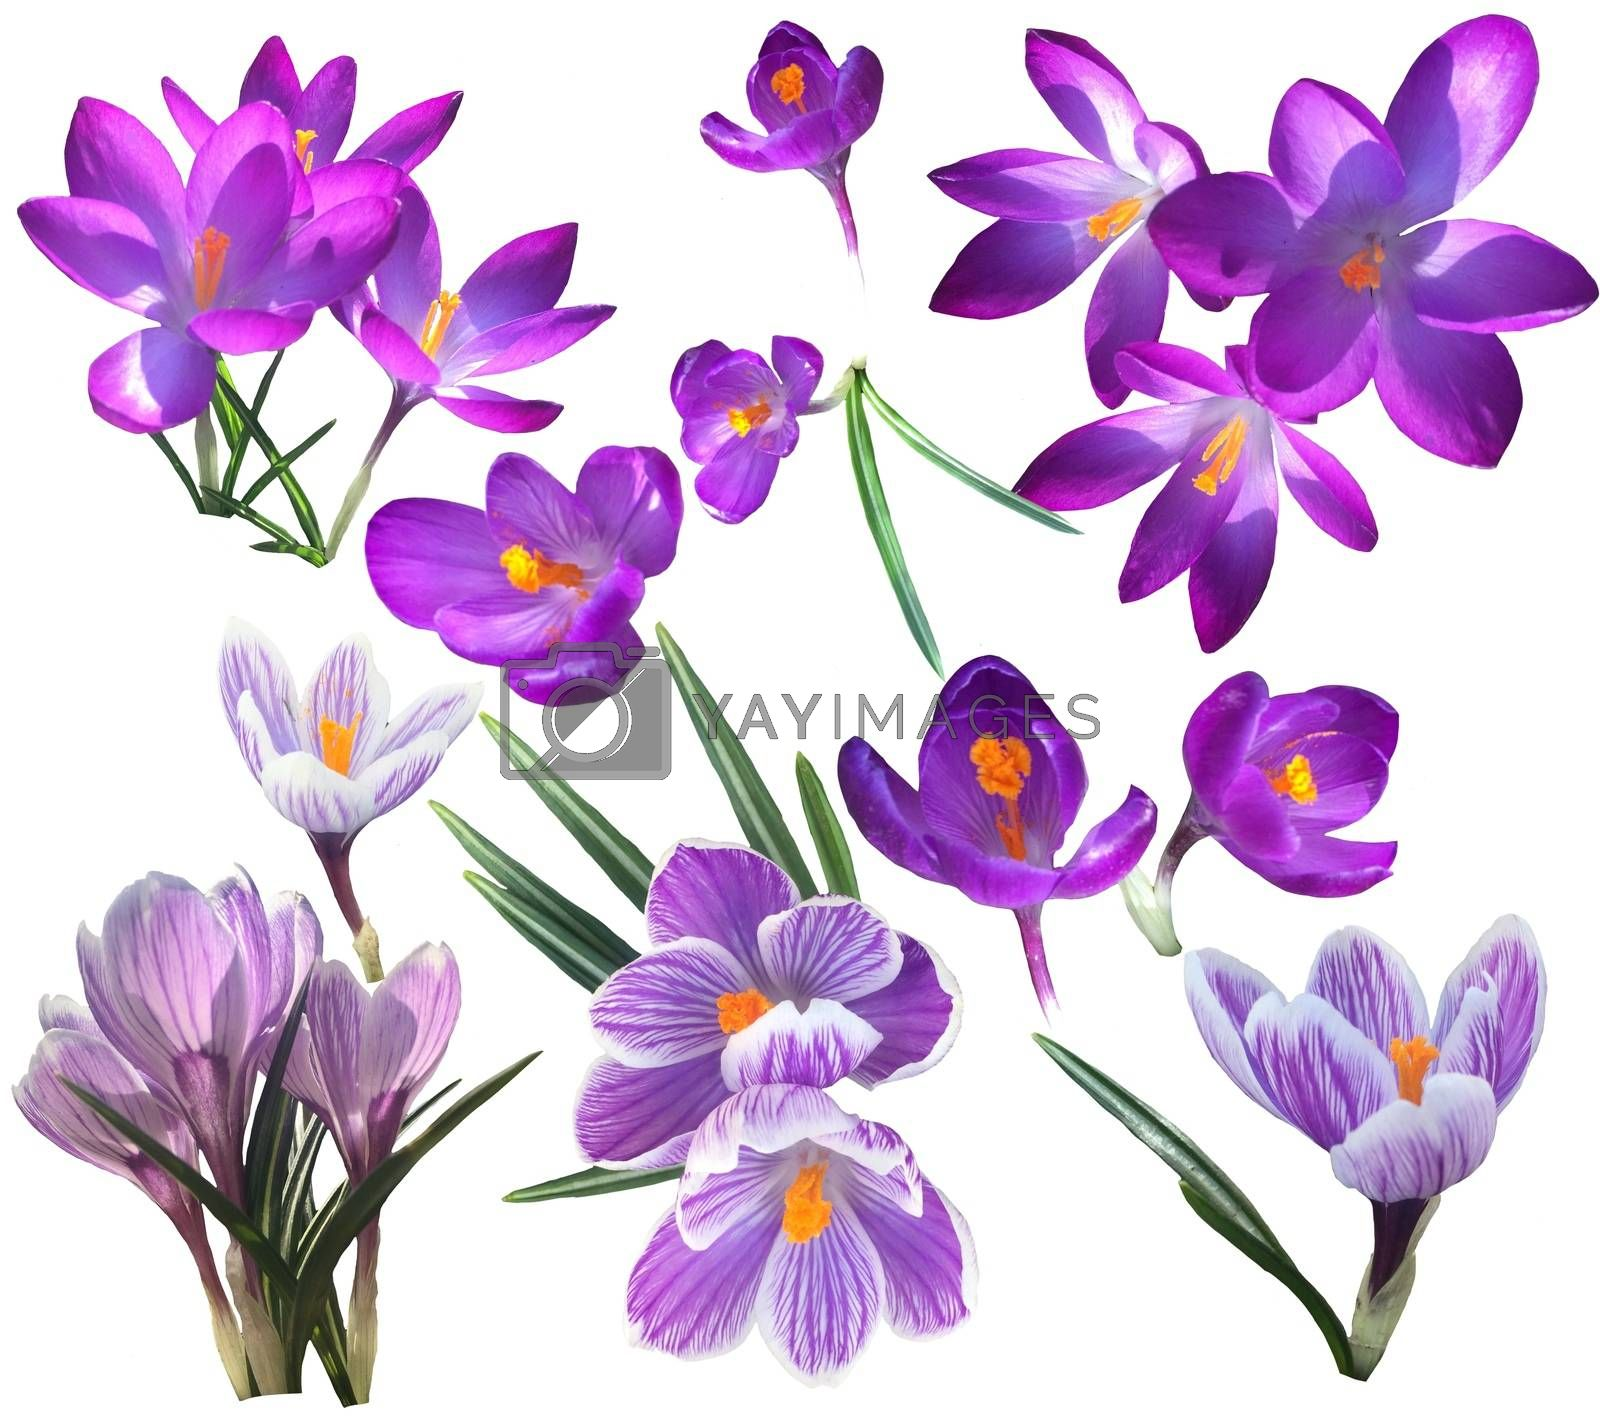 Collection of Violet and lilac crocus flowers isolated on white background